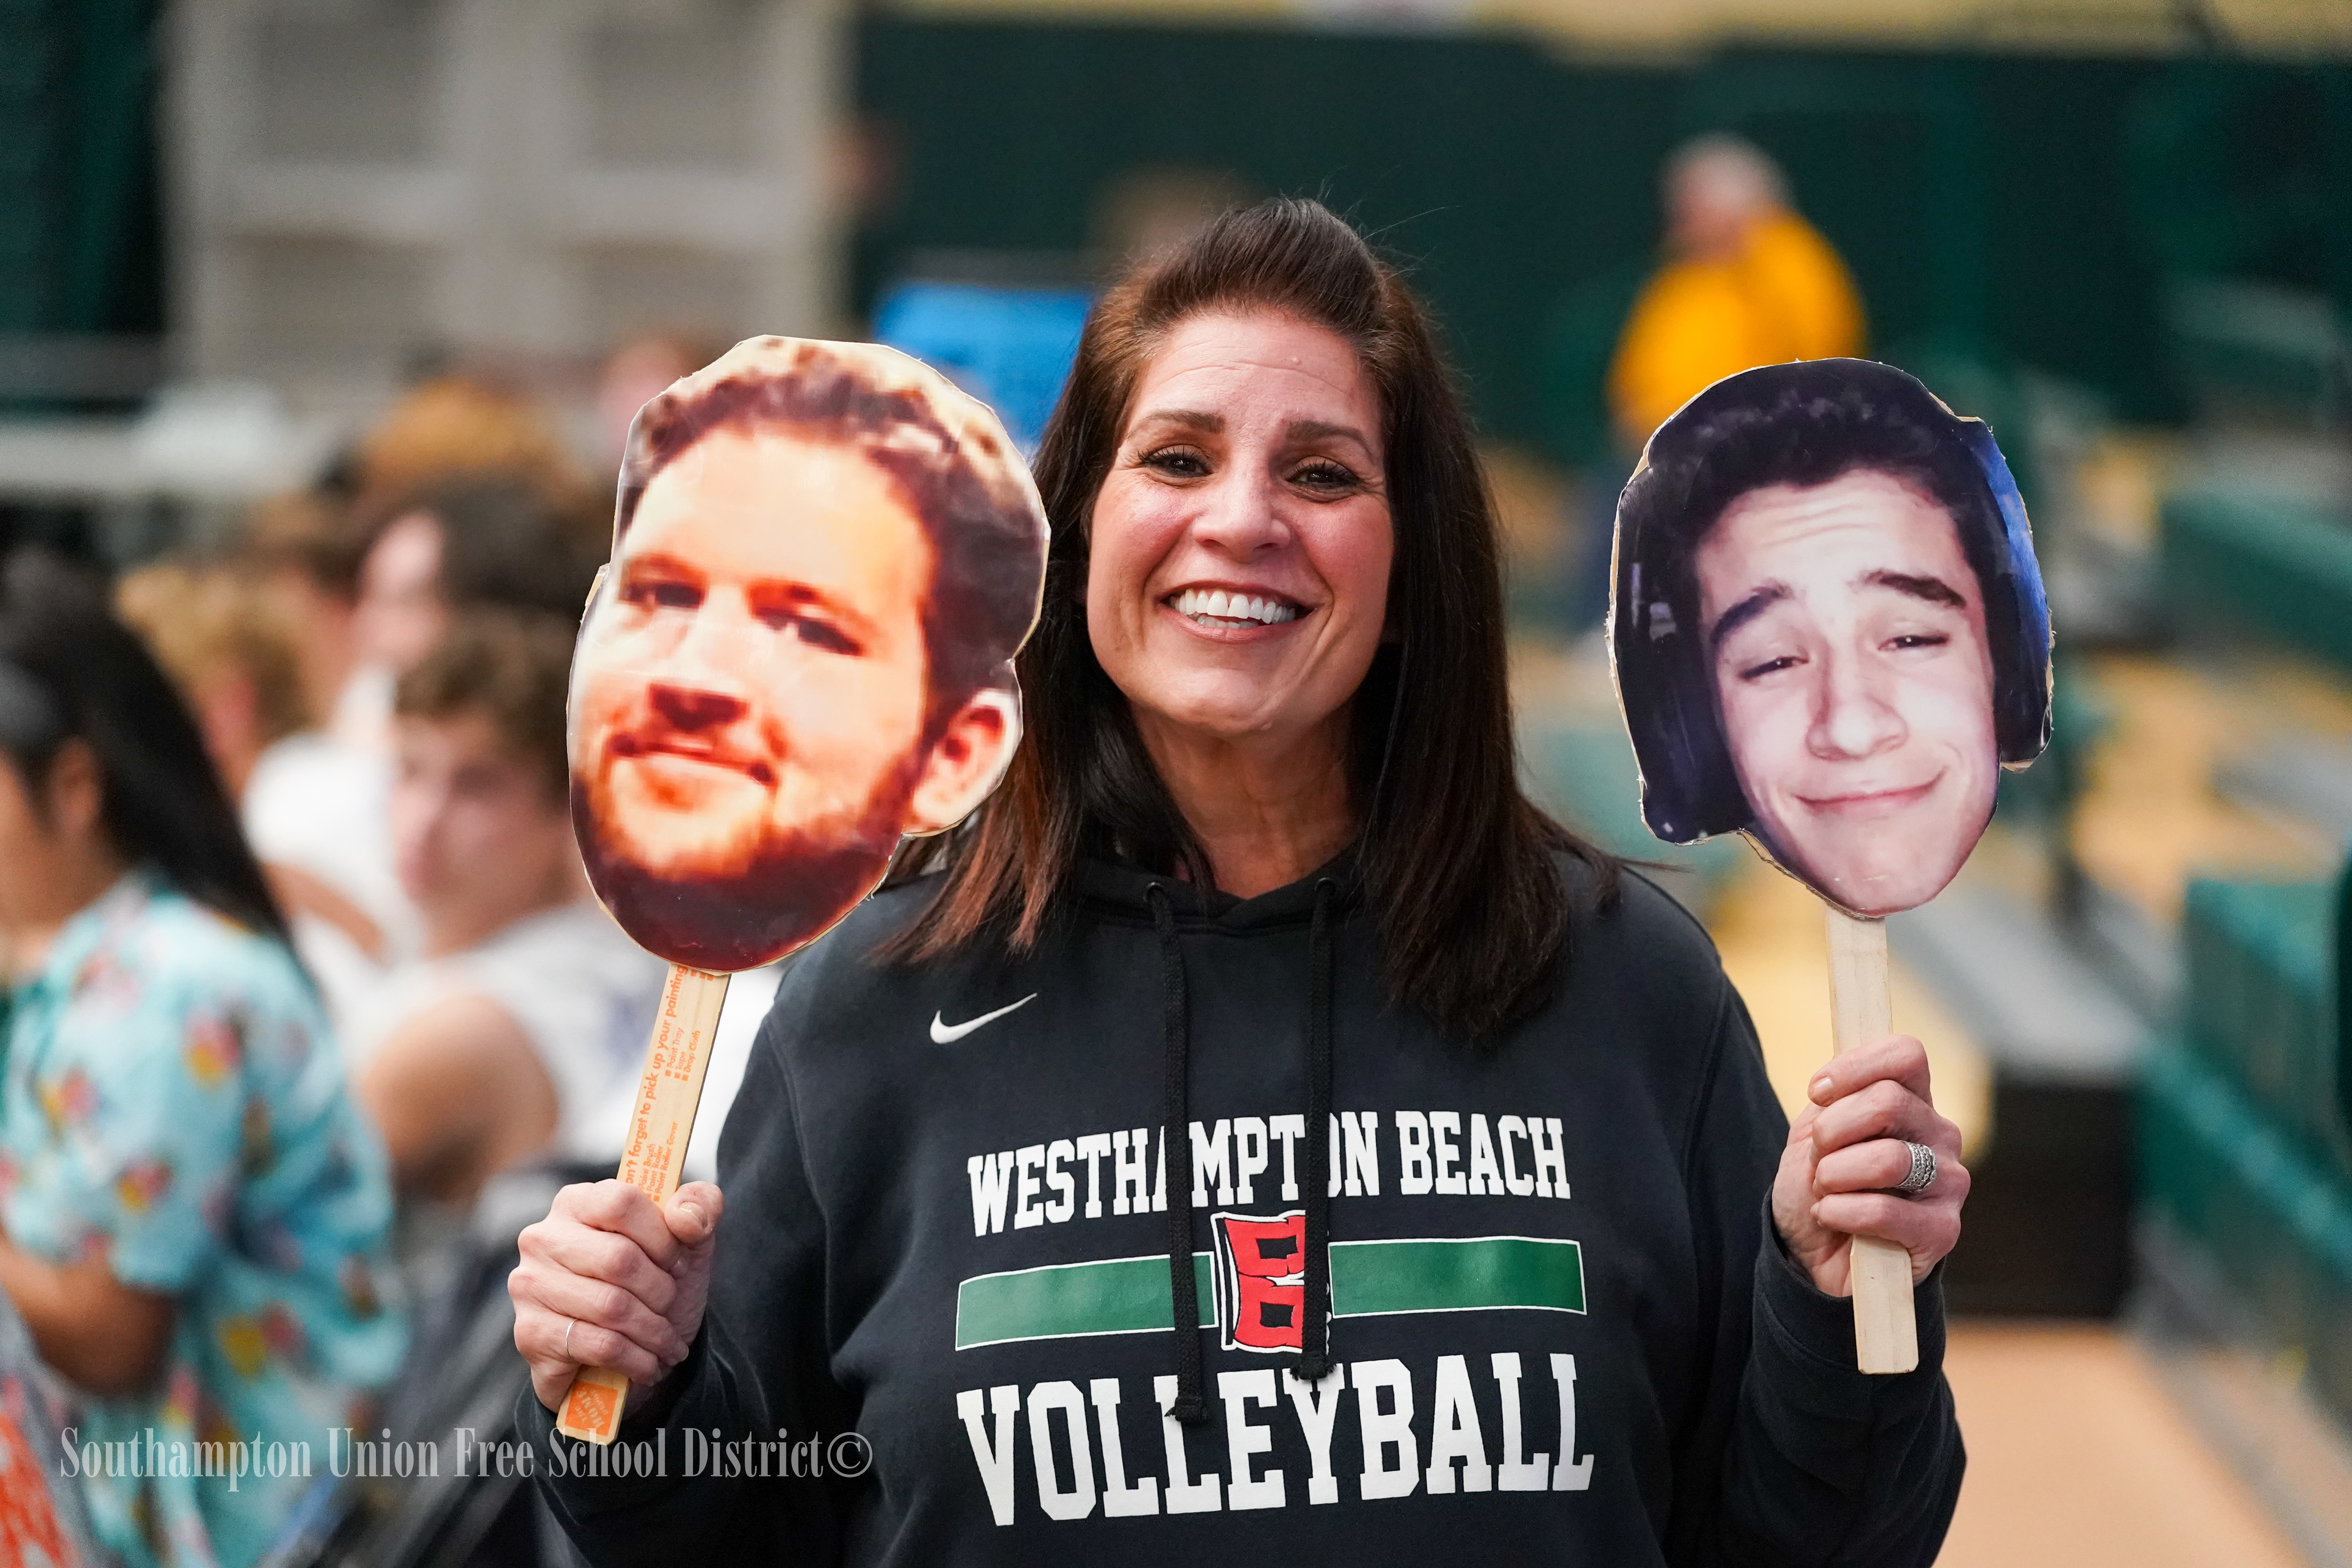 The Westhampton Beach community came out once again, this time in Farmingdale, to support its boys volleyball team.